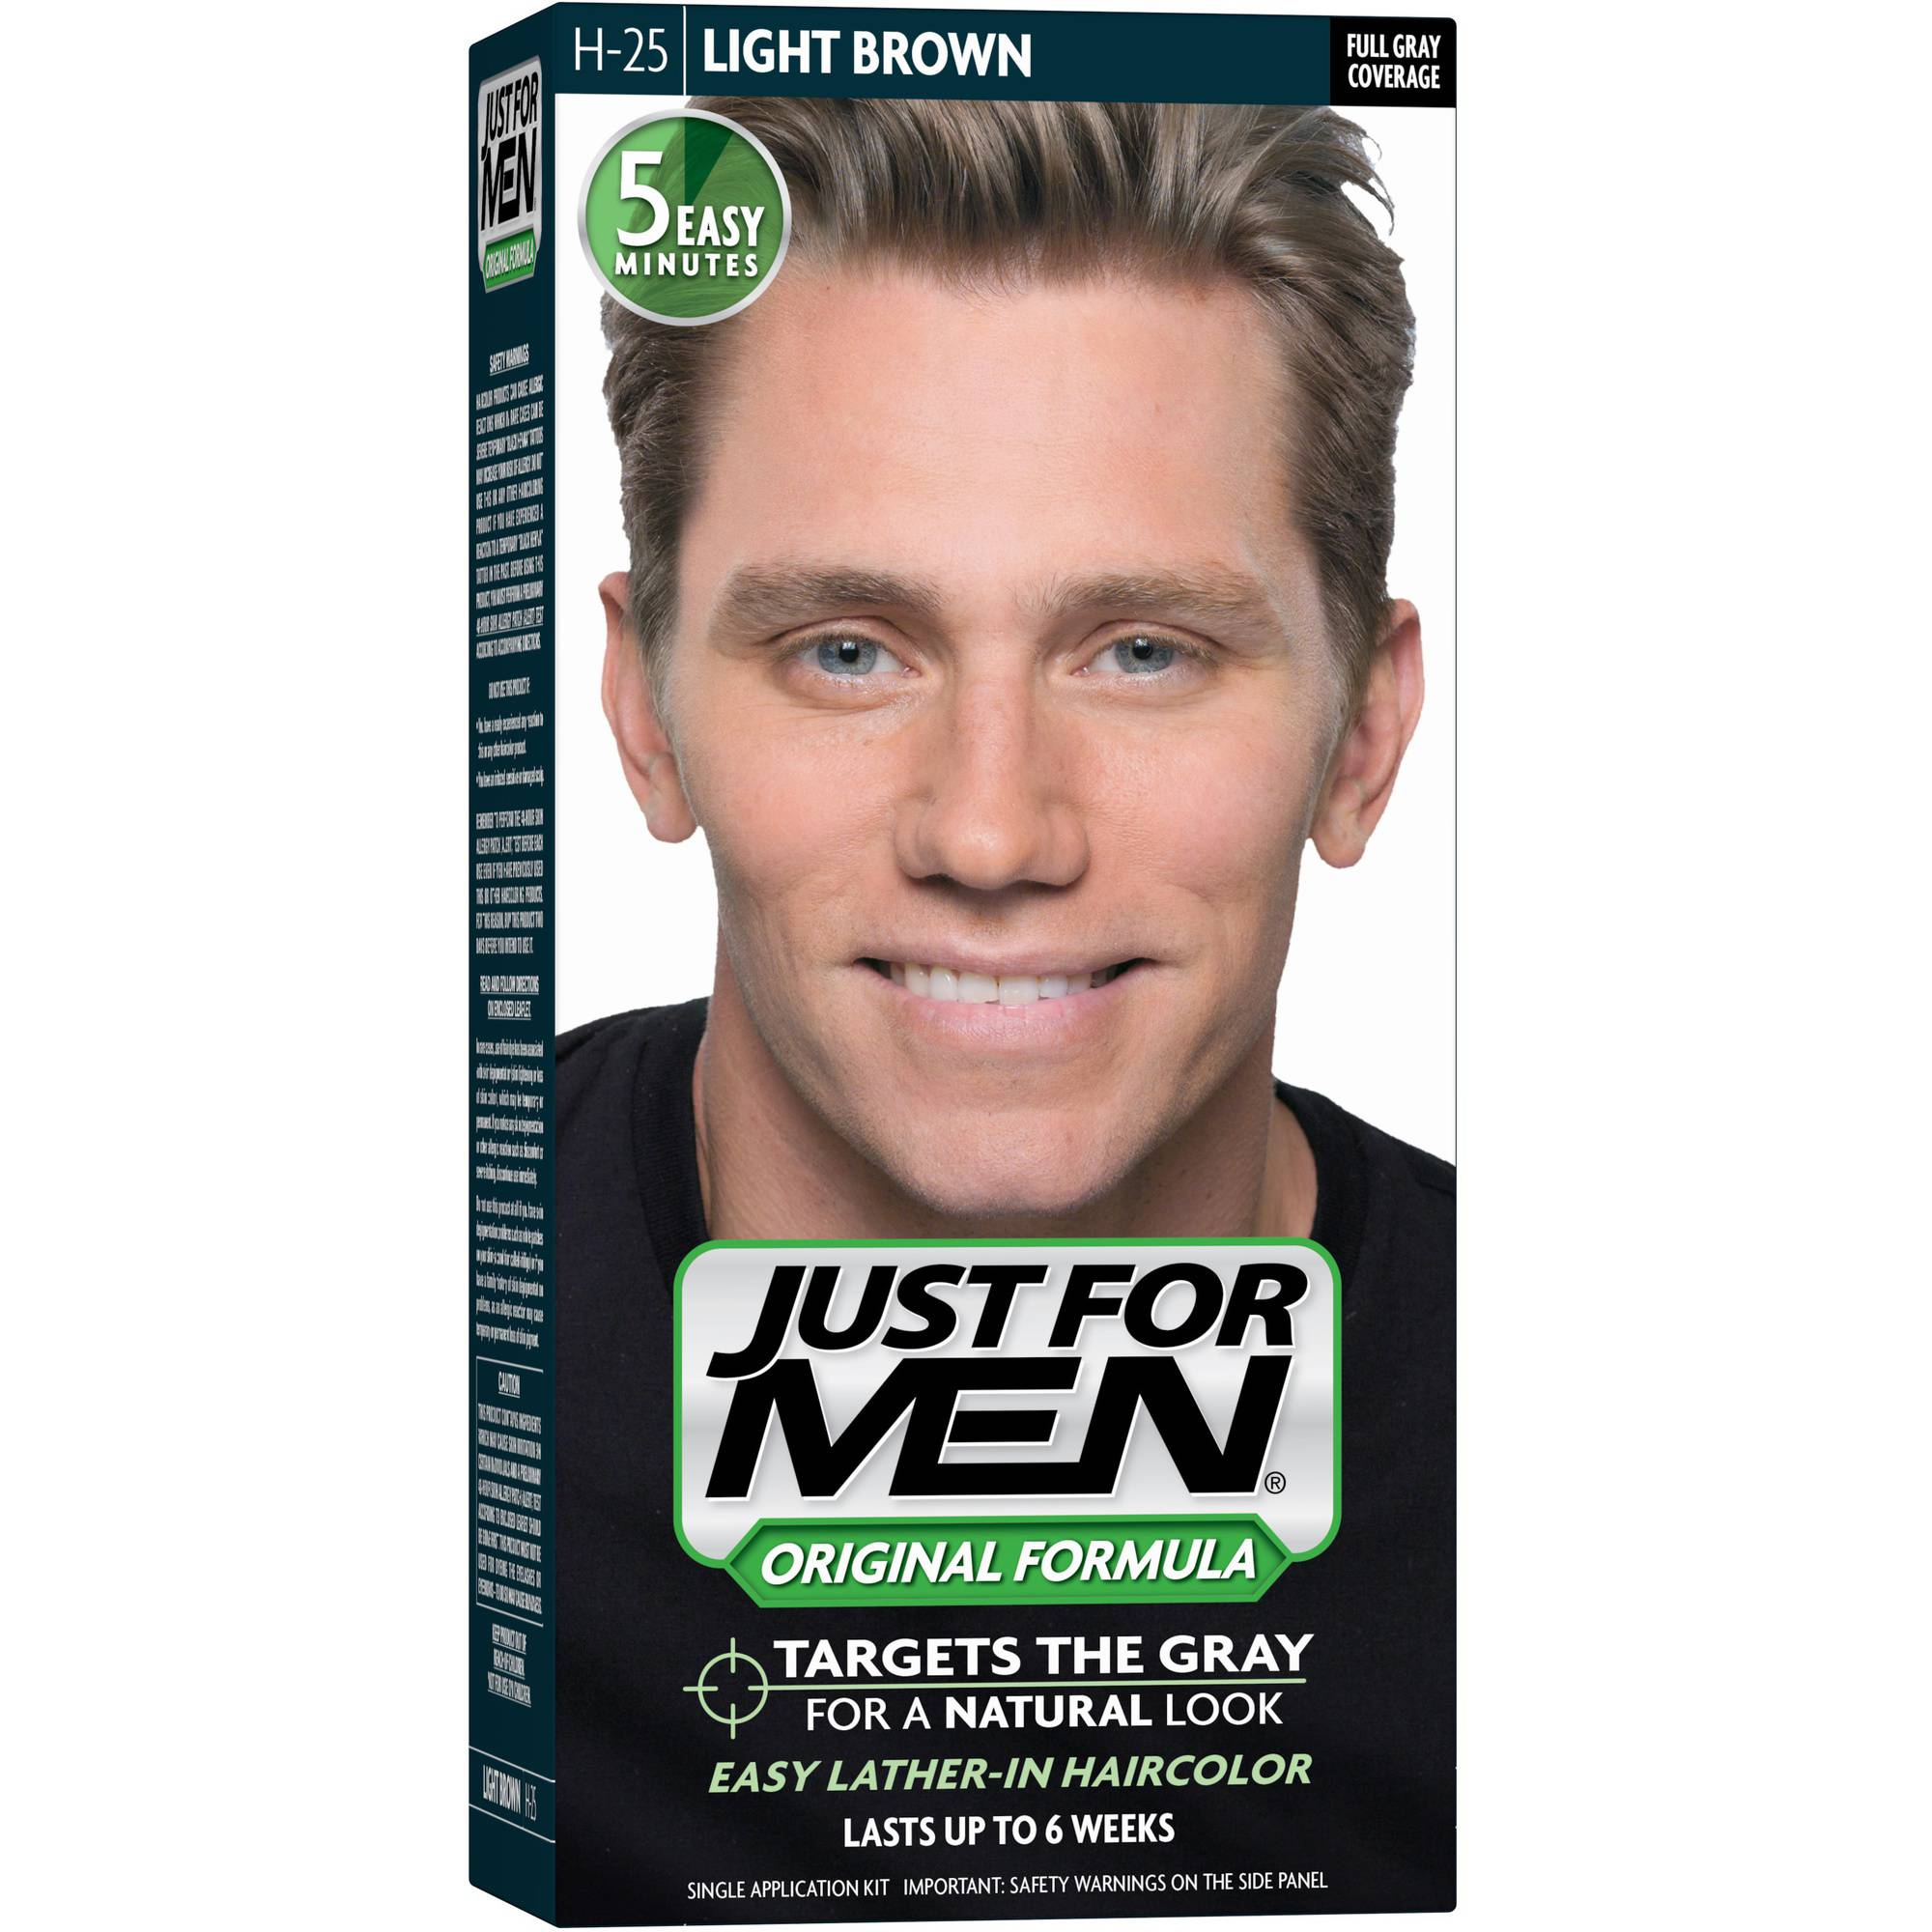 Just For Men Shampoo, 25 Light Brown